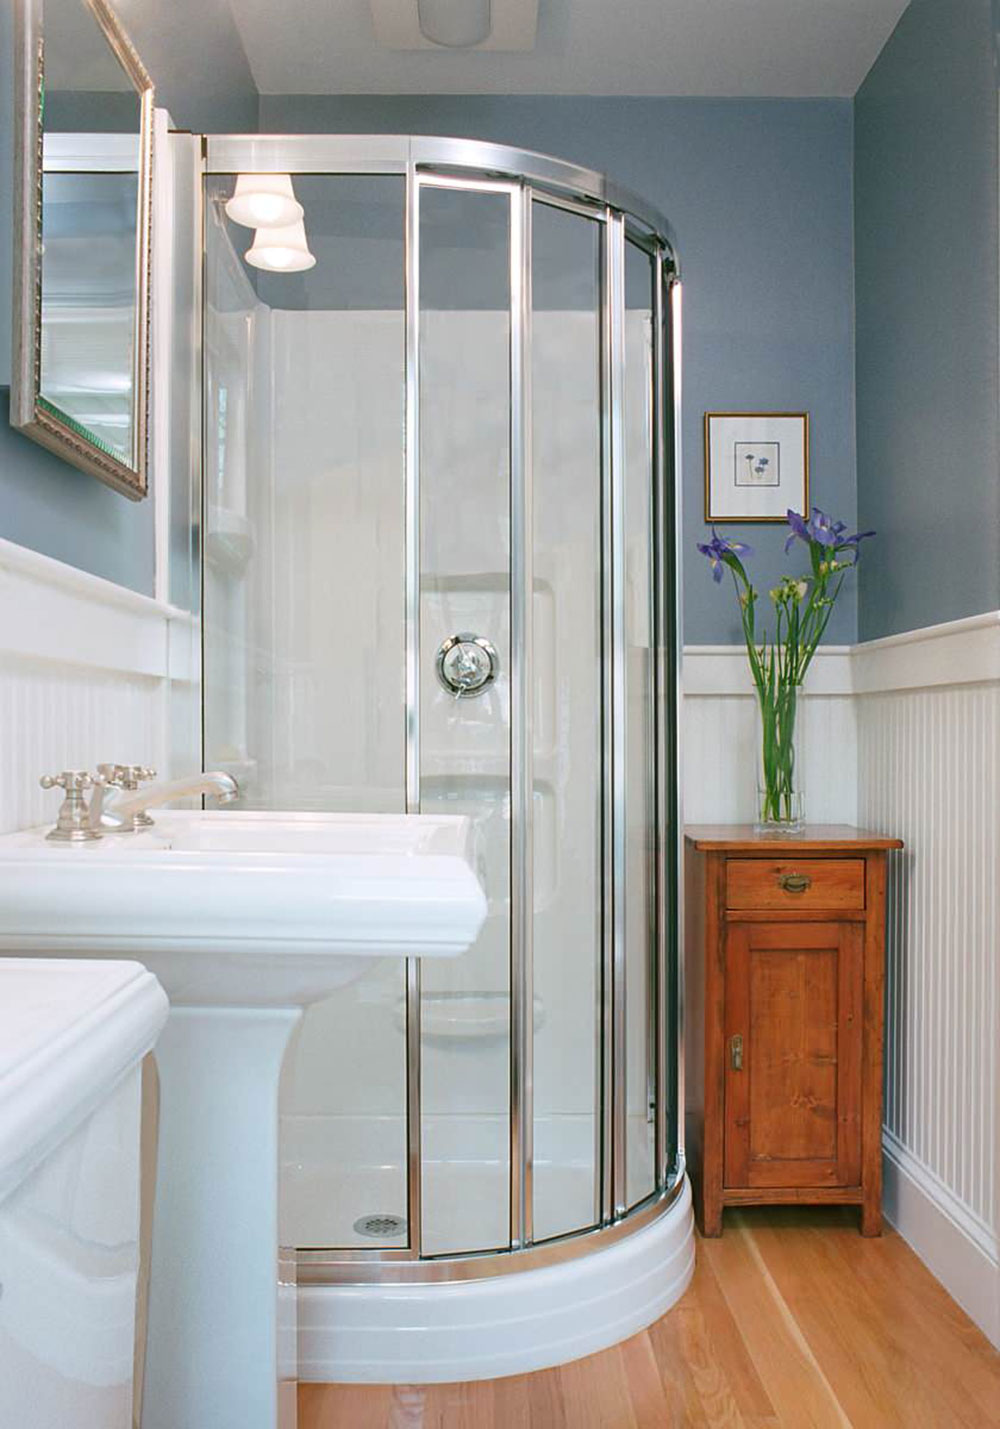 Creative Small Bathrooms how to make a small bathroom look bigger - tips and ideas